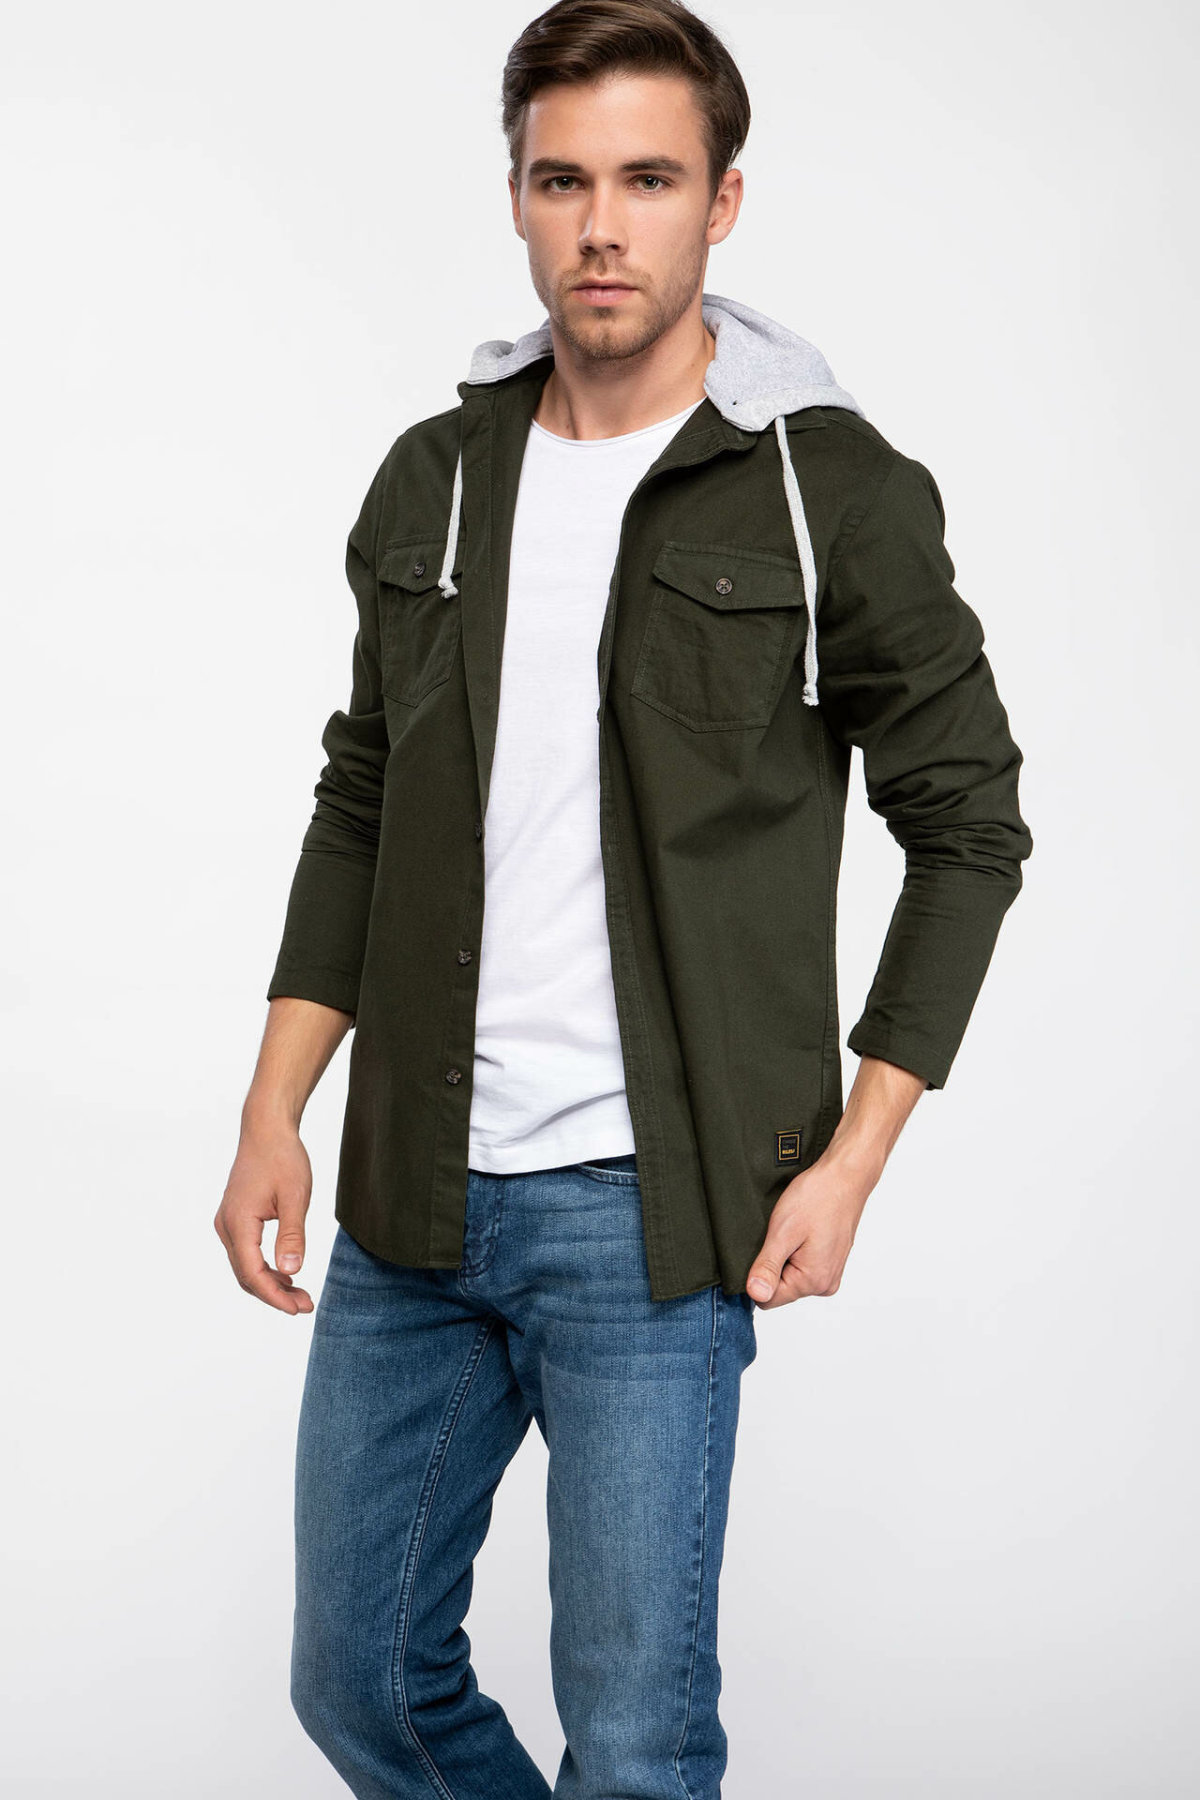 DeFacto Man Army Green Winter Thick Long Sleeve Shirt Men Hooded Casual Top Shirts Male Shirts Cloth-J3193AZ18WN